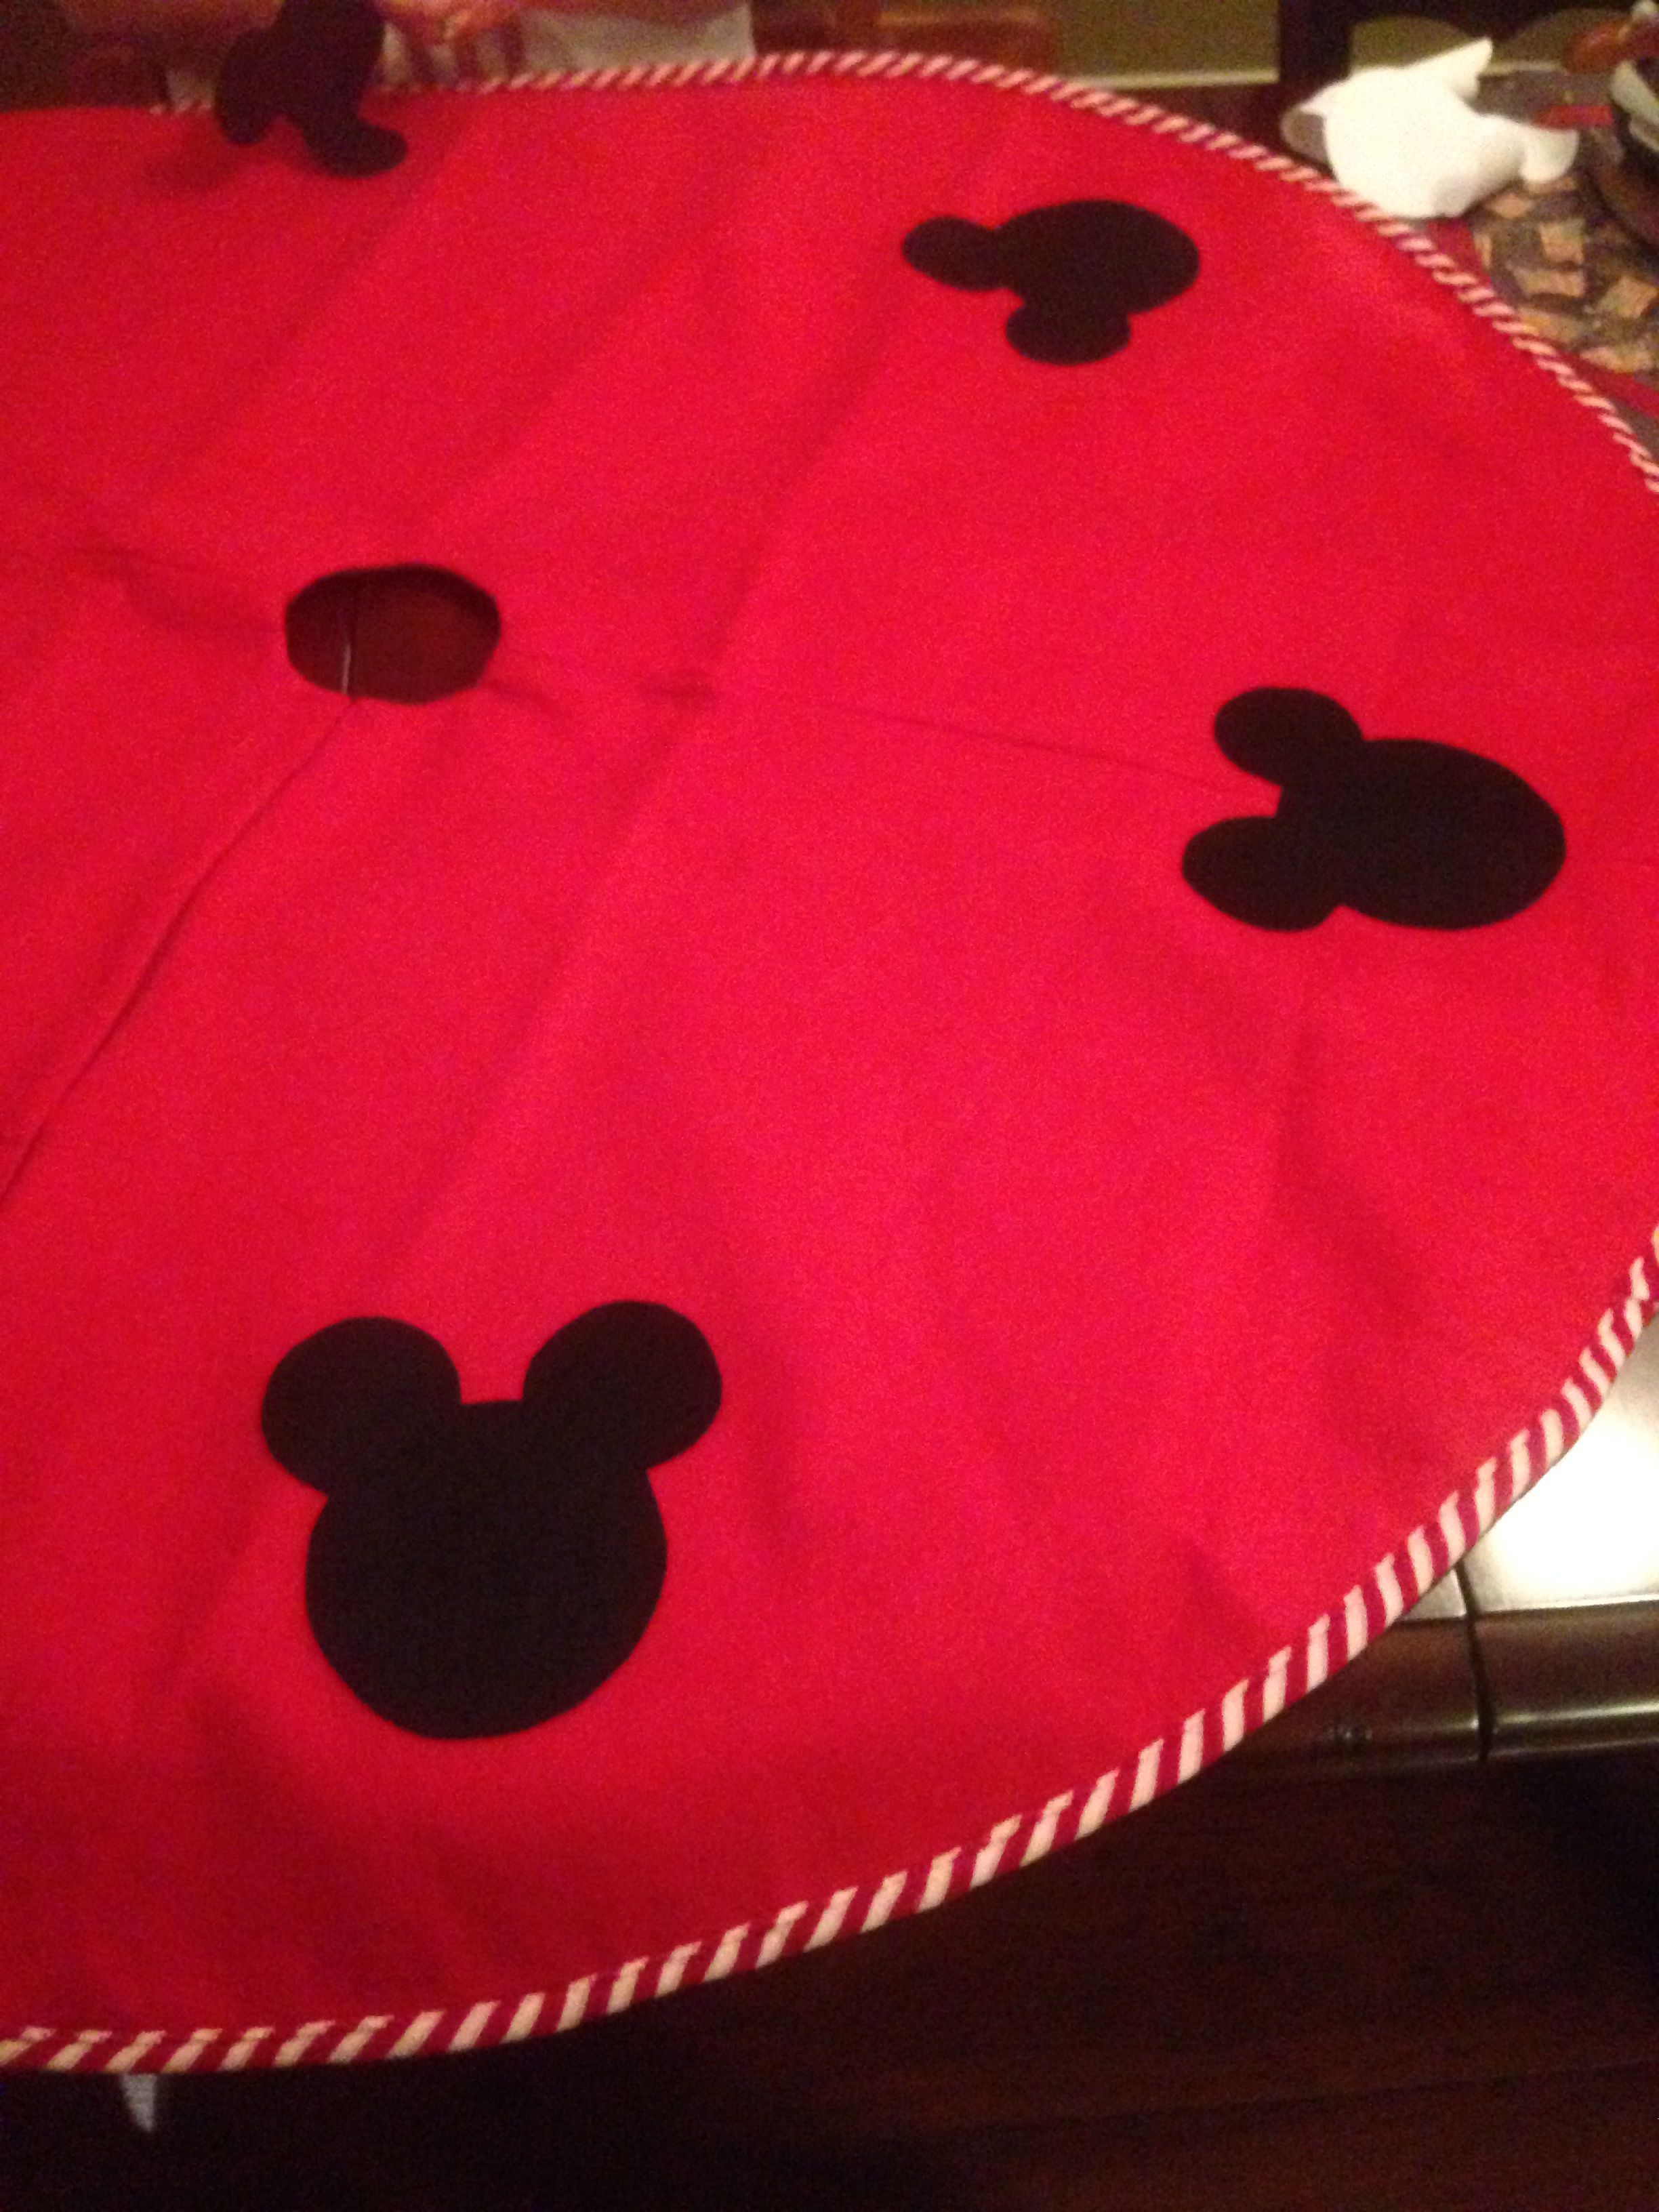 My Moms Homemade Disney Mickey Mouse Tree Skirt! Cheap Felt Tree Skirt With  Black Sticky